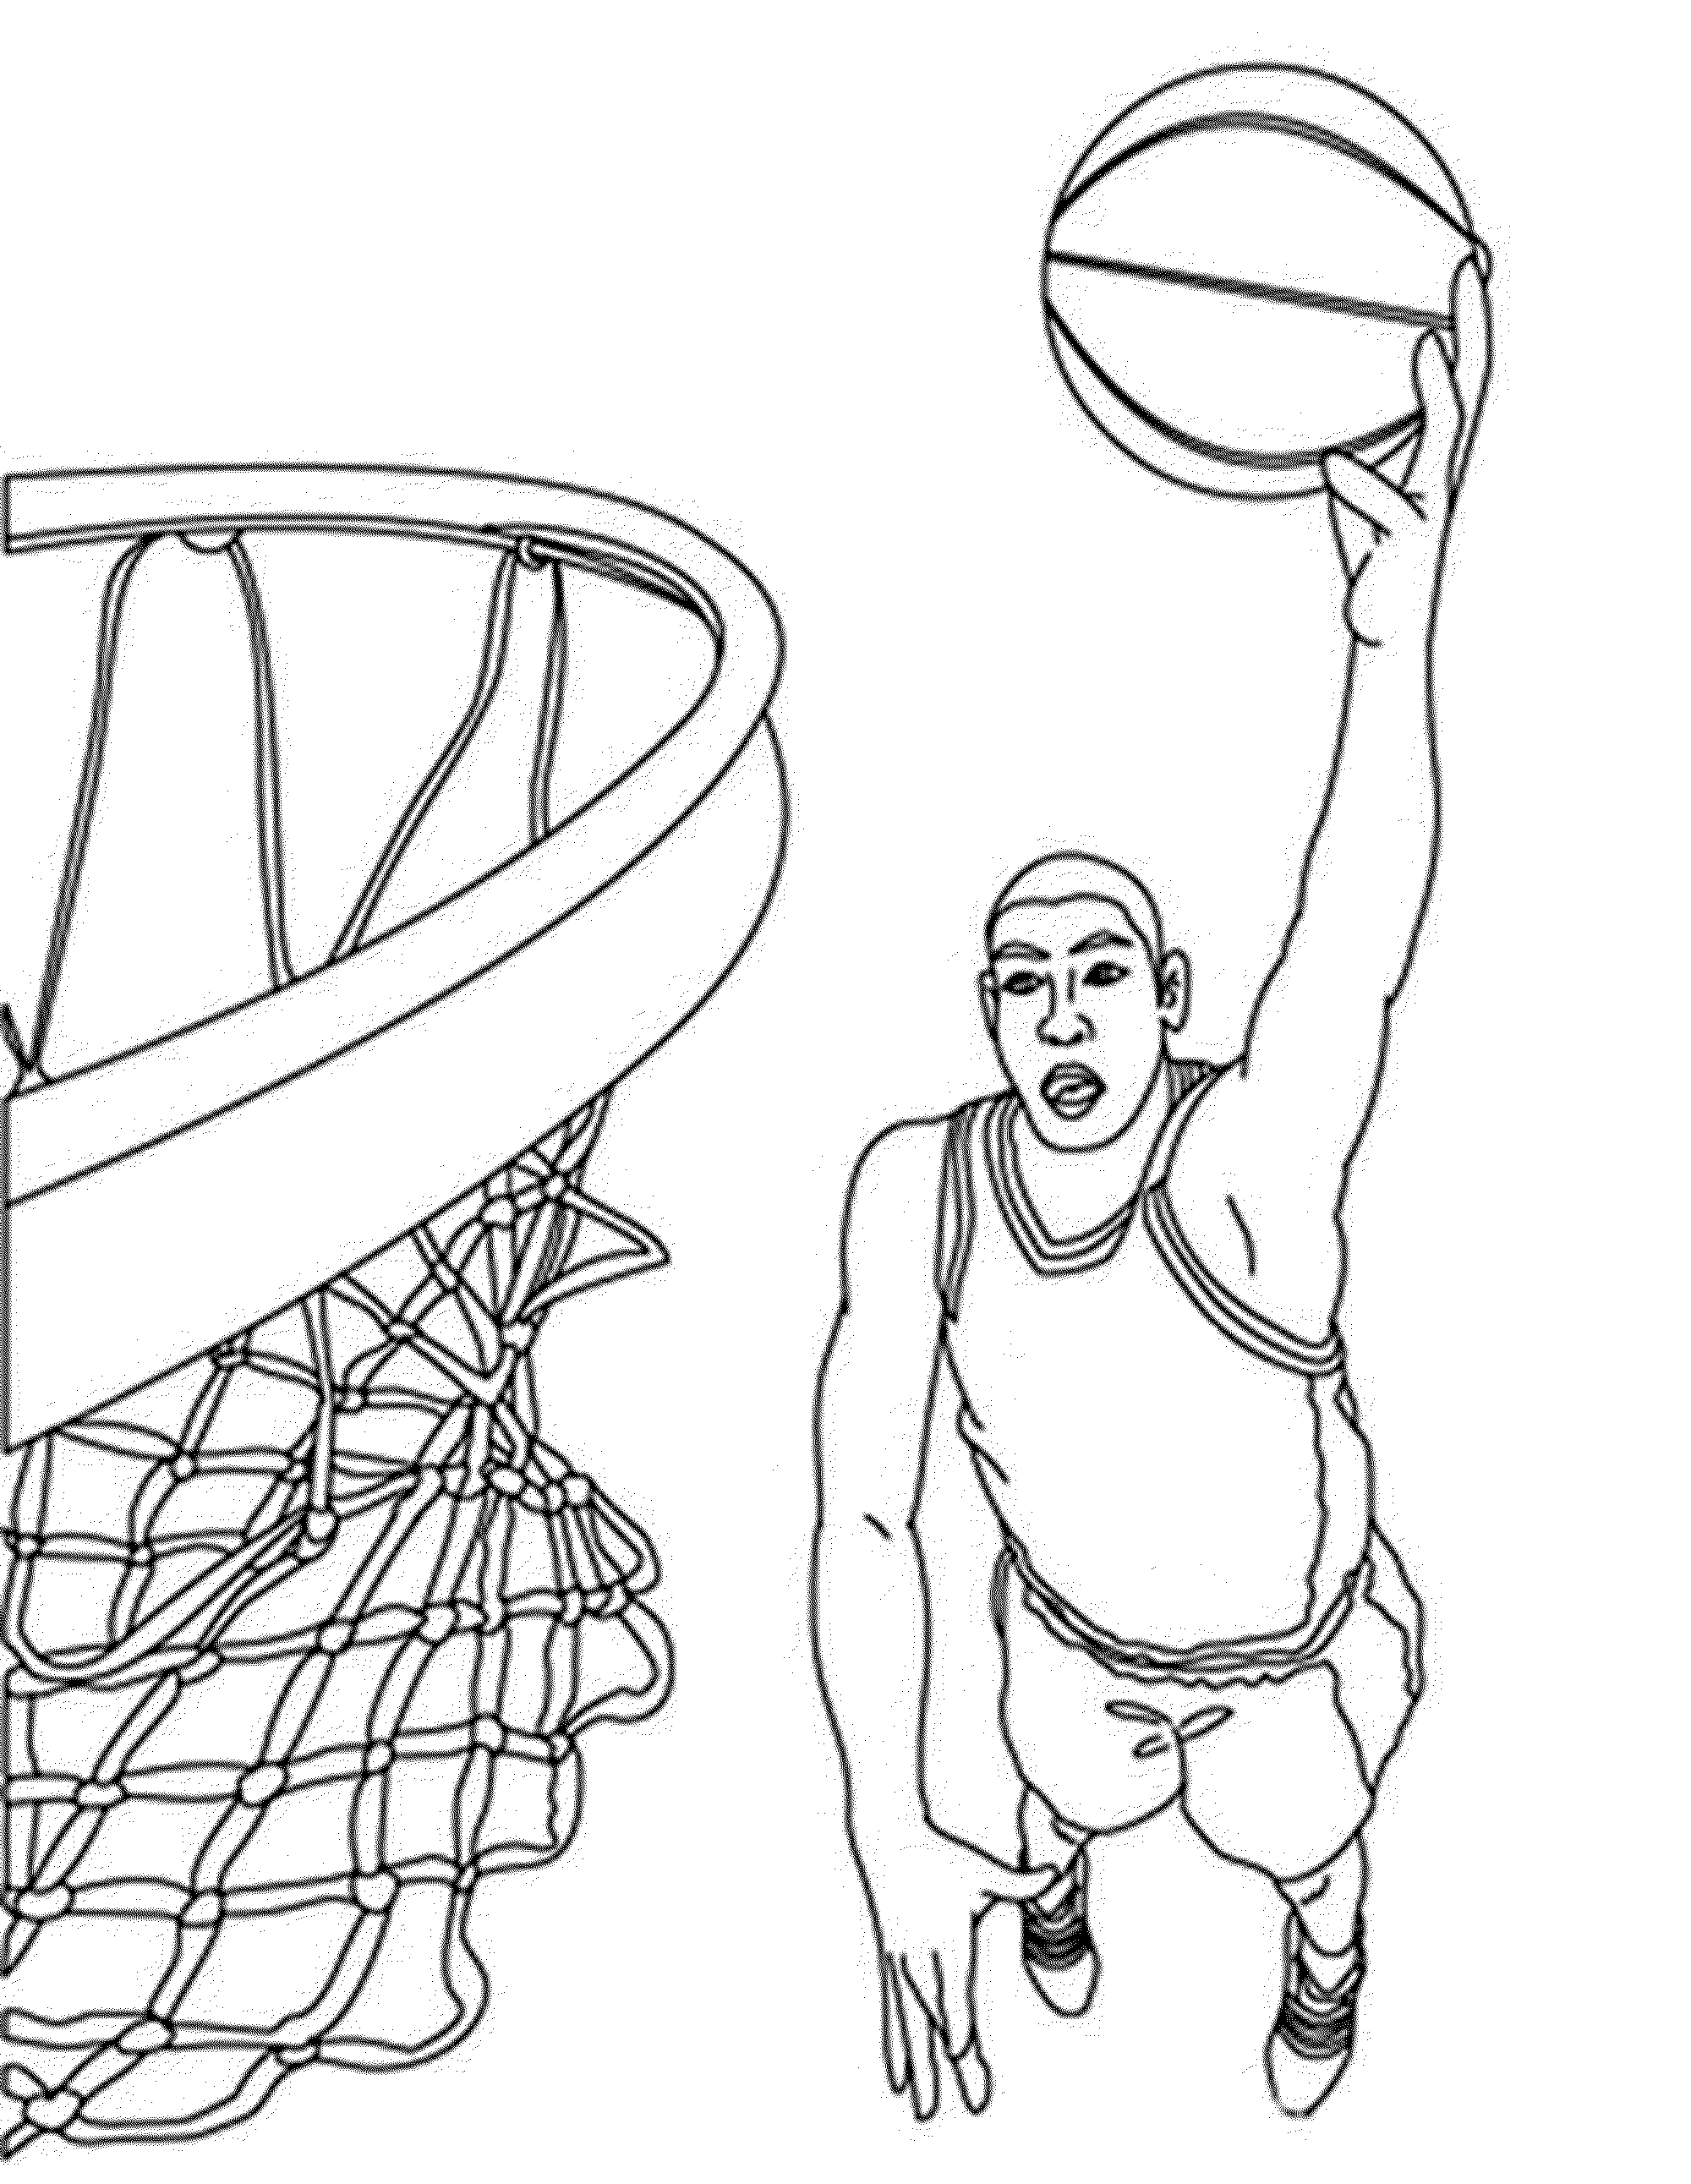 2000x2583 Amazing Basketball Player Dunking Drawings With Basketball